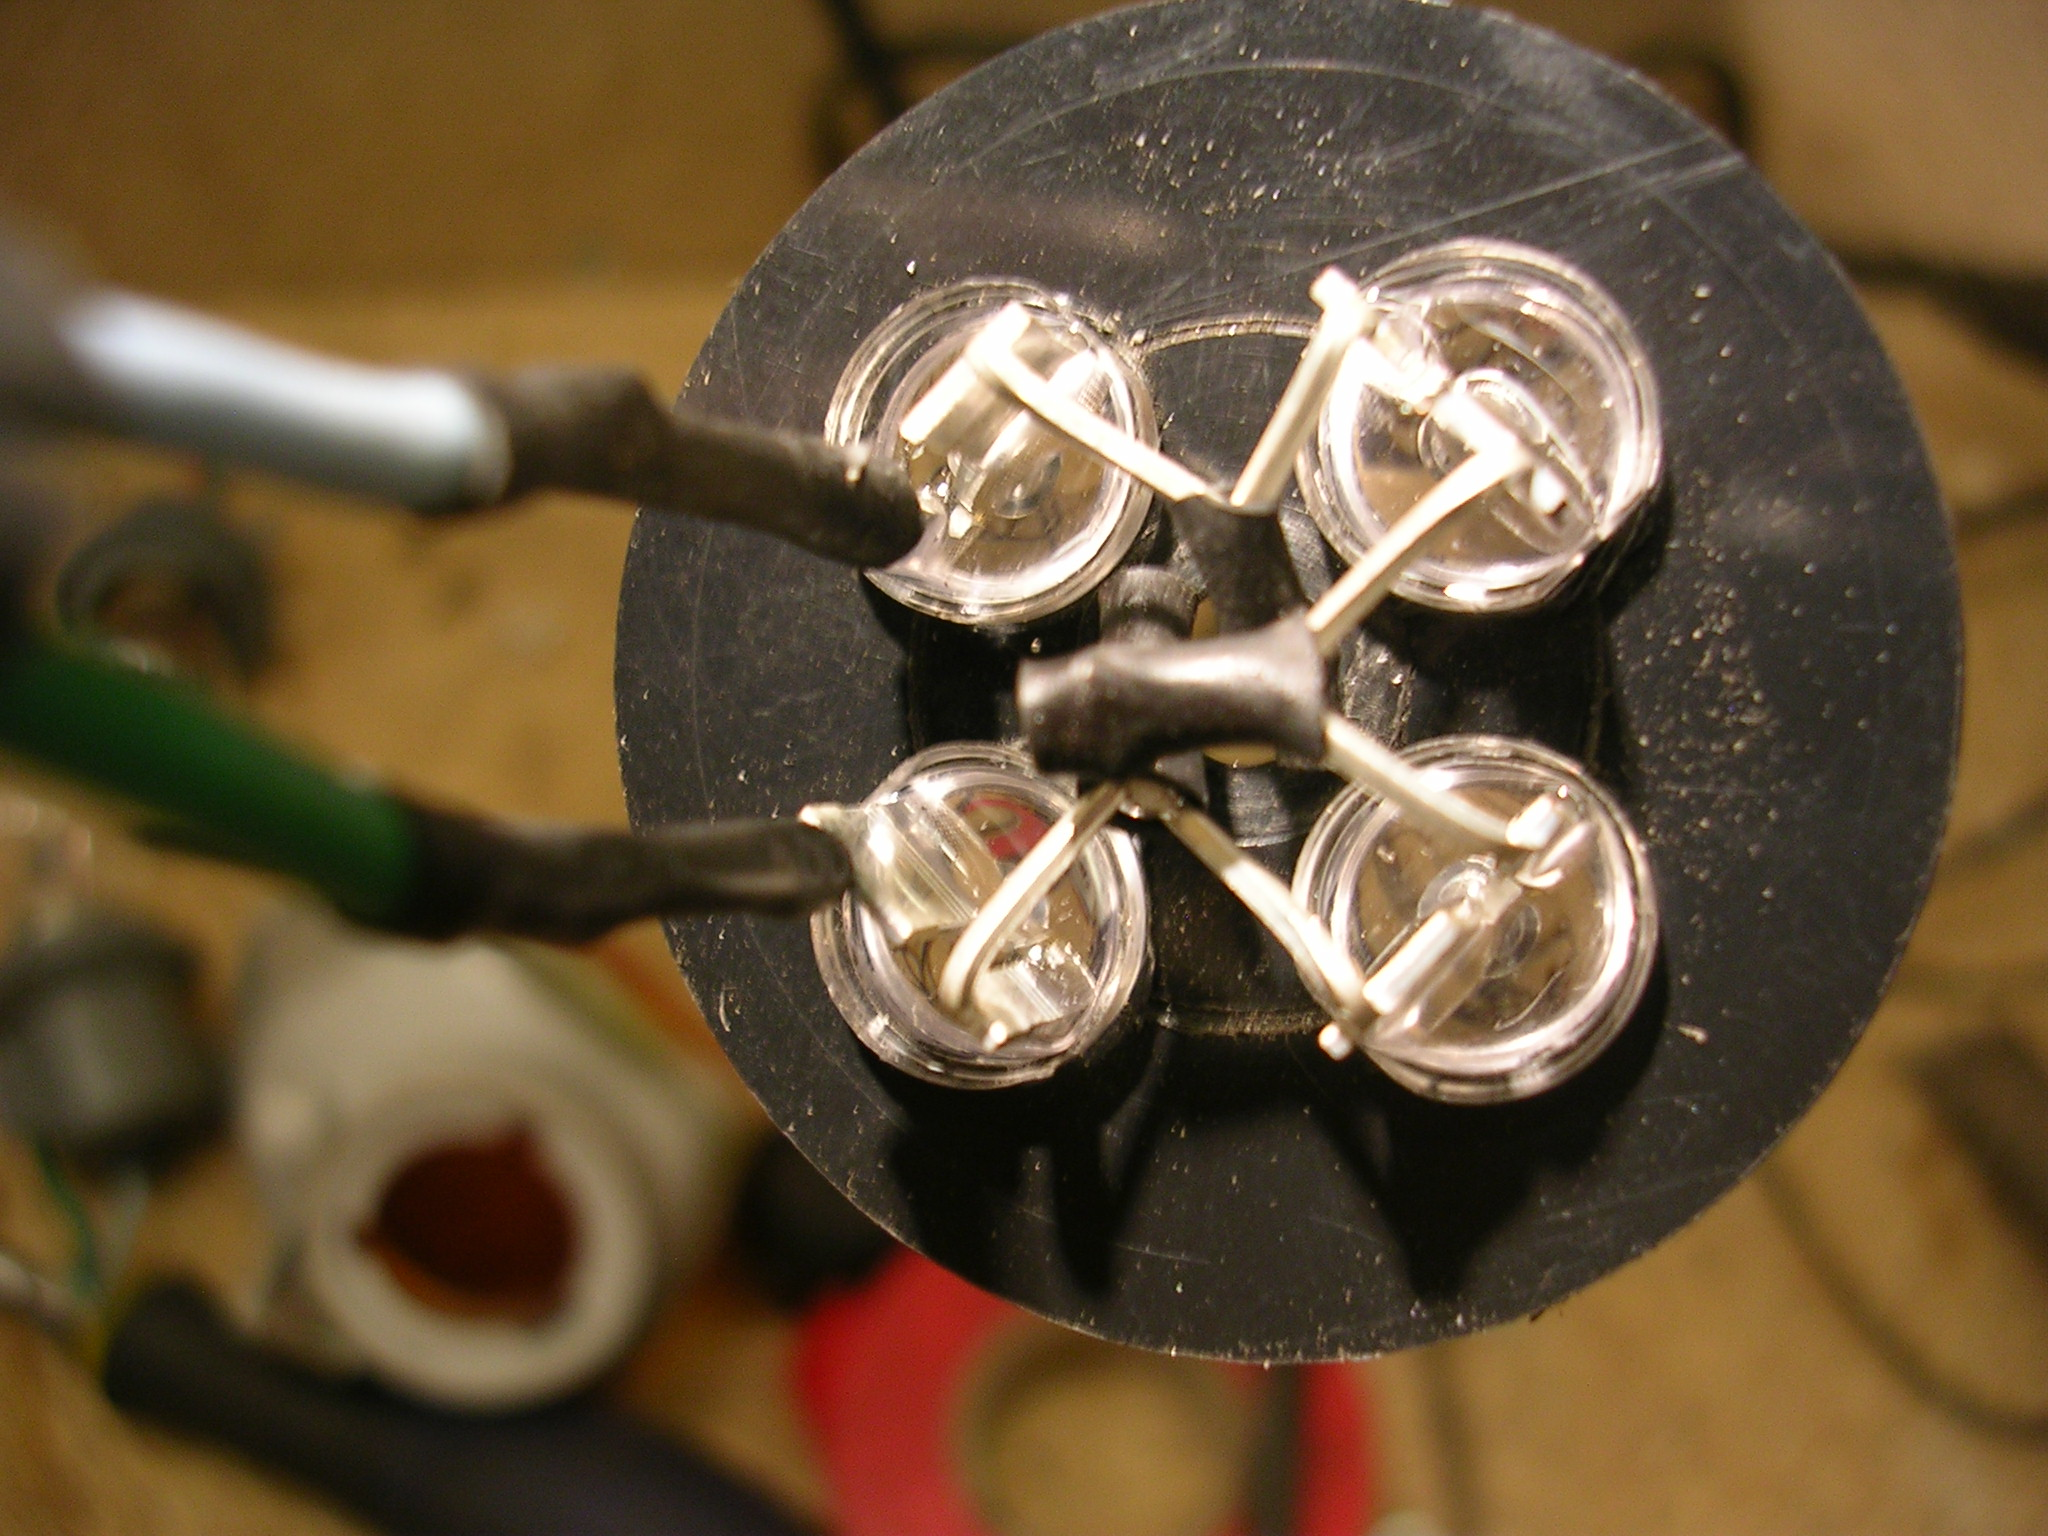 Picture of Mounting and Soldering the LED's